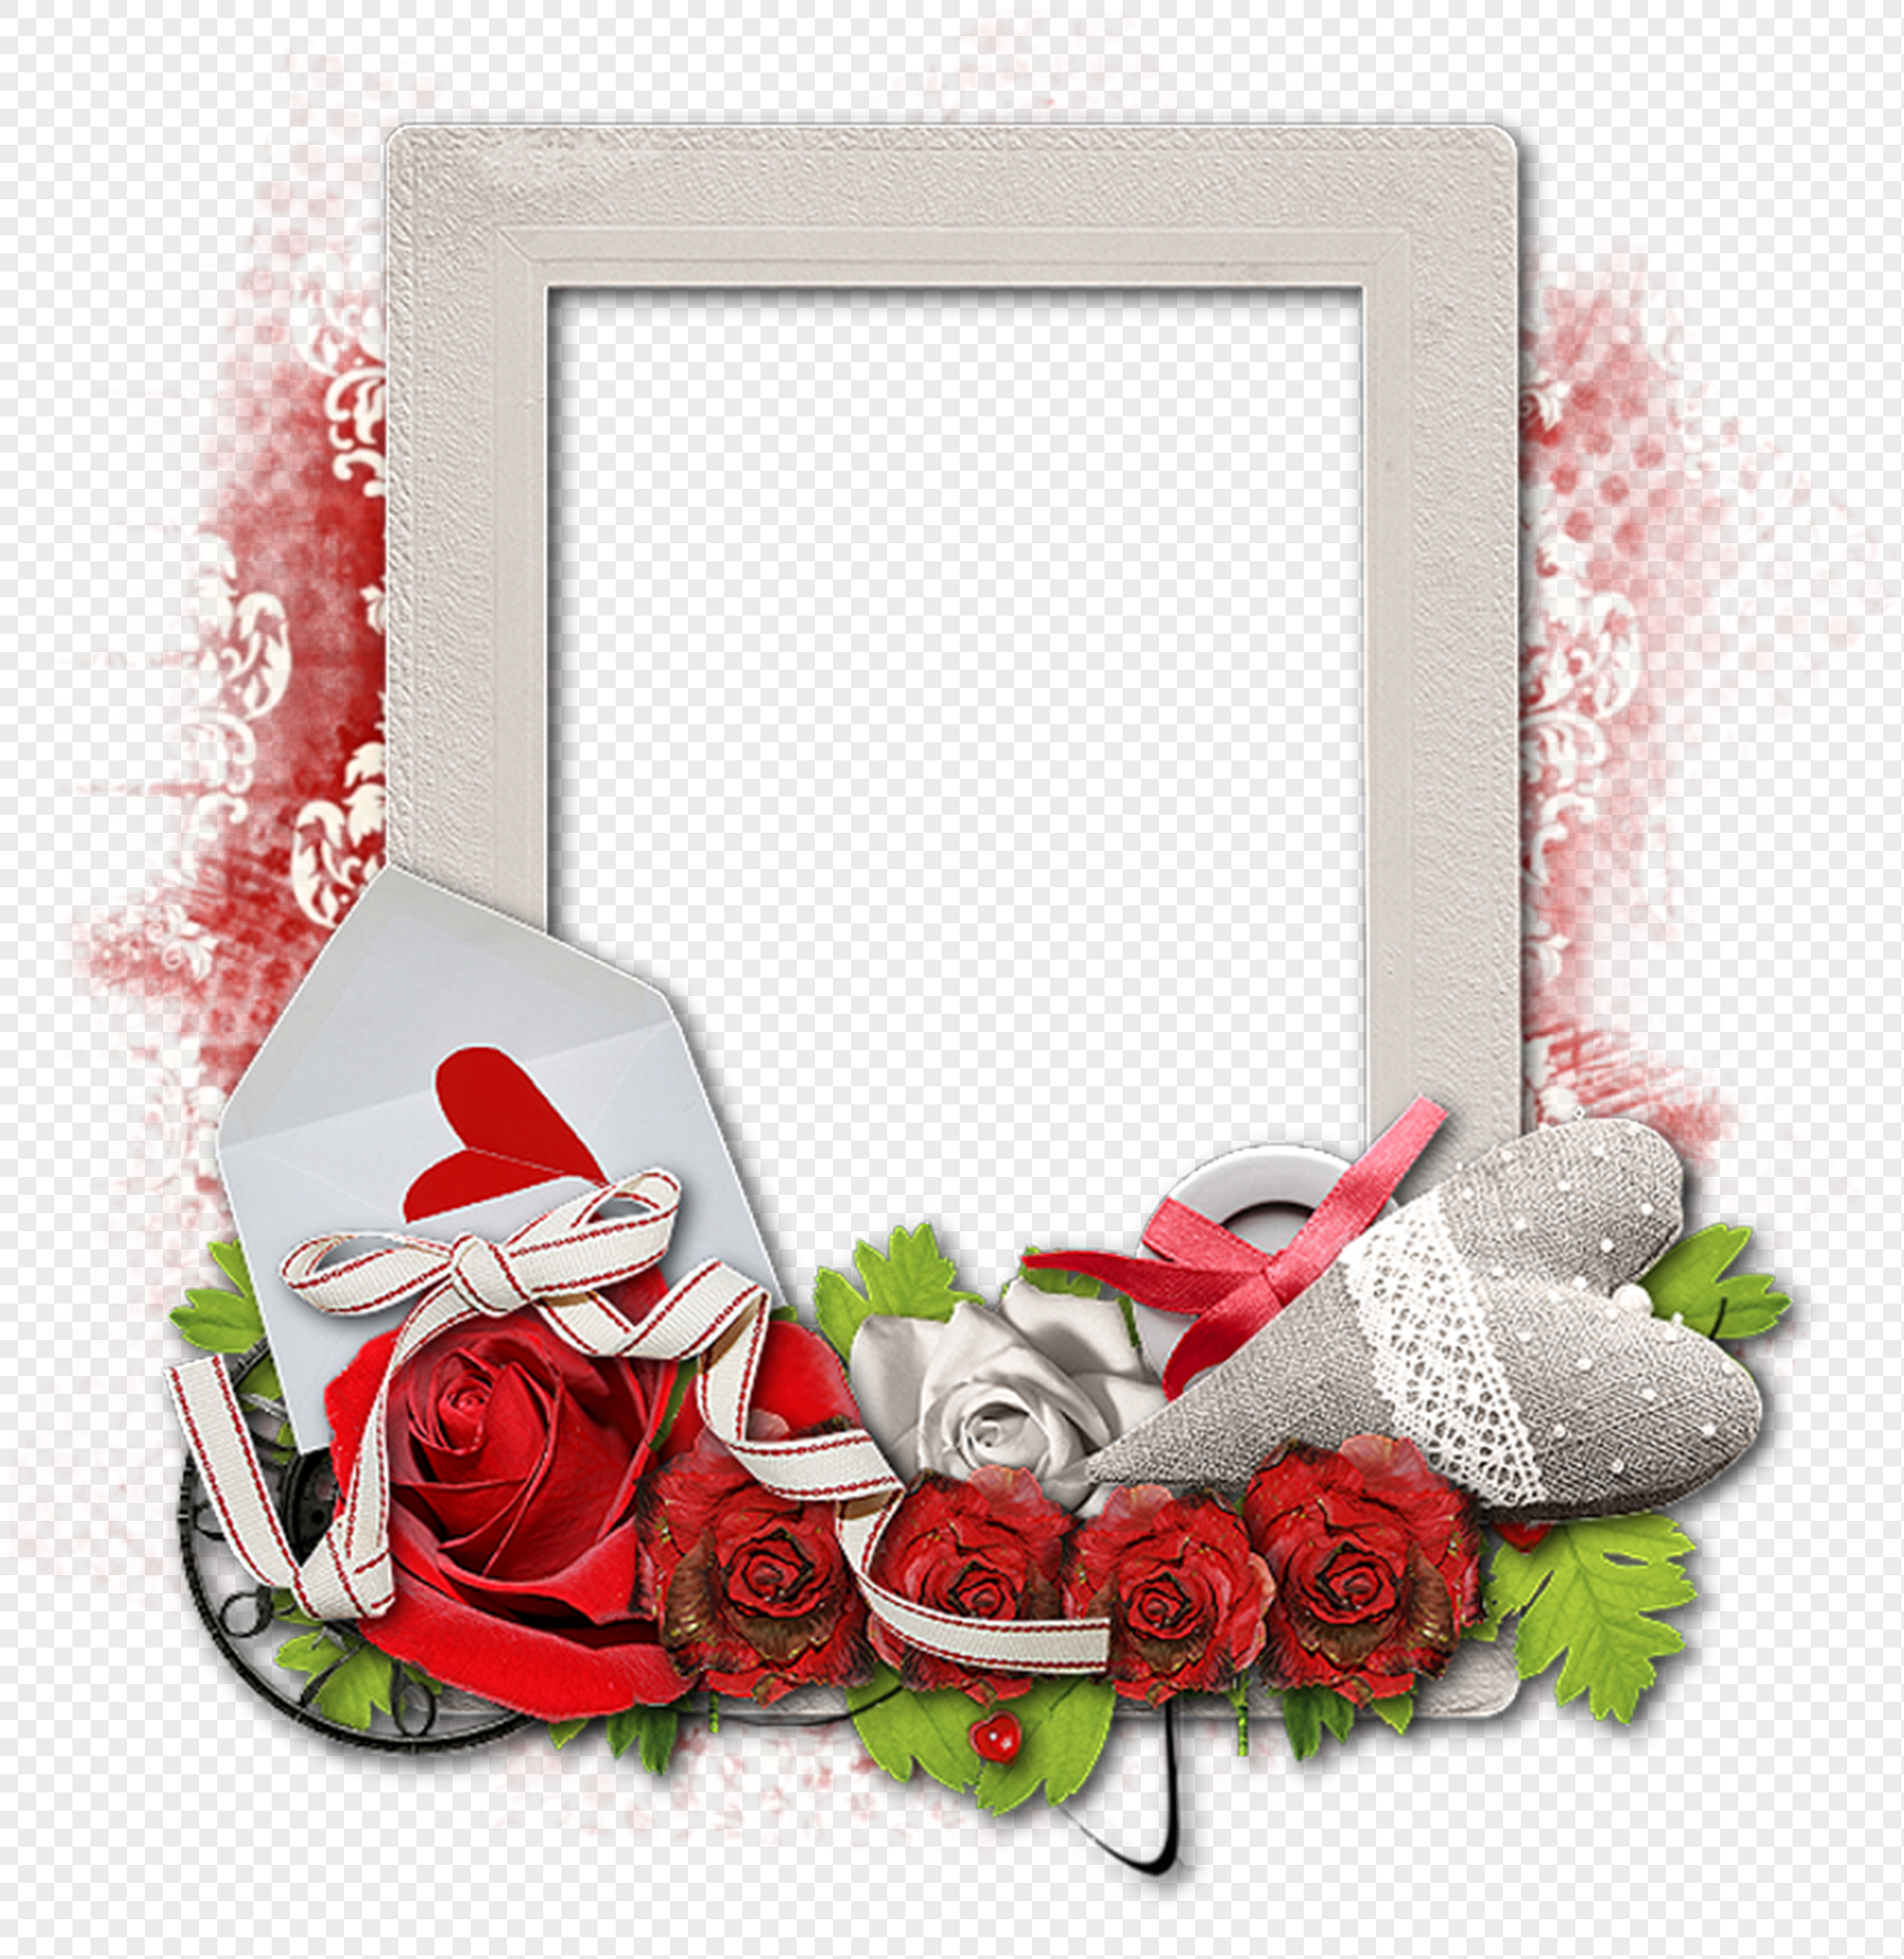 Physical Flowers Valentines Day Theme Photo Frame Png Imagepicture